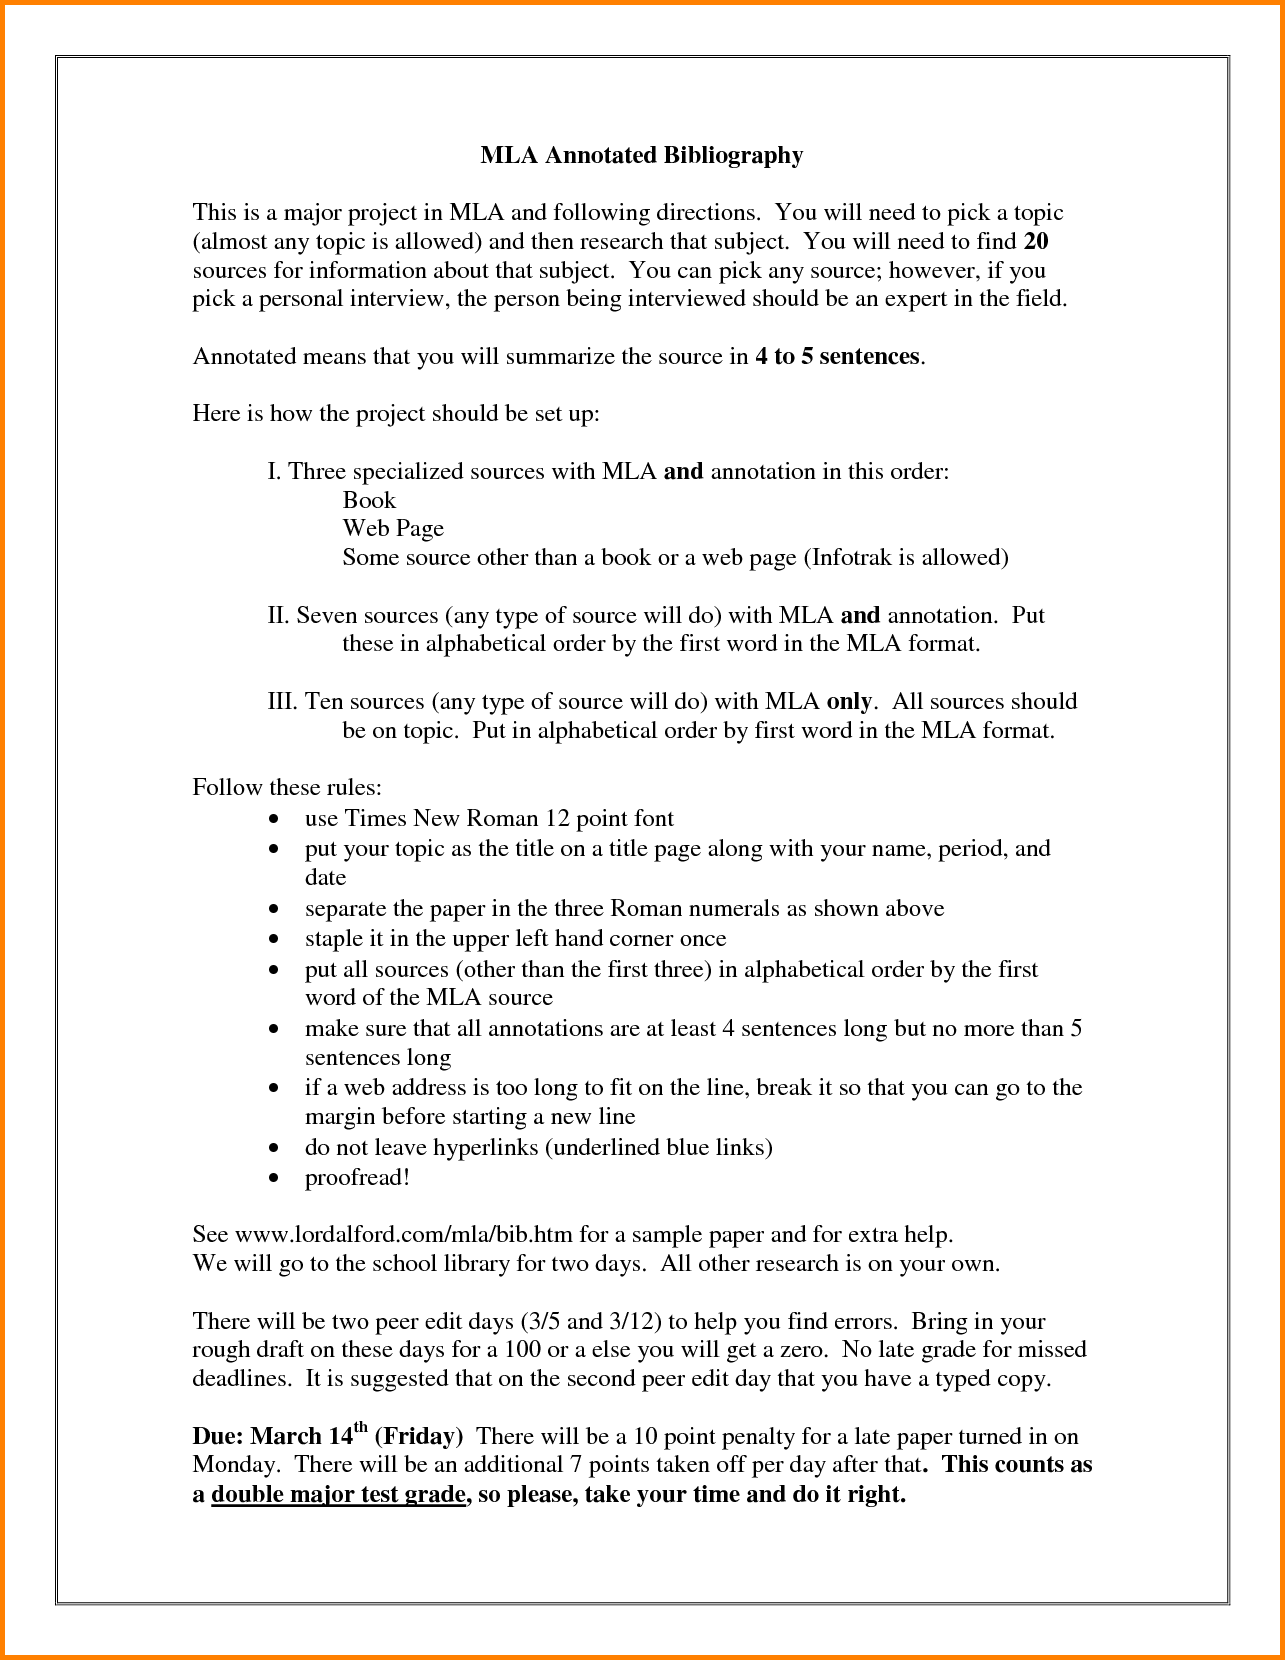 Annotated Bibliography Mla Format.Center The Title 1024×583.png - Mla PNG